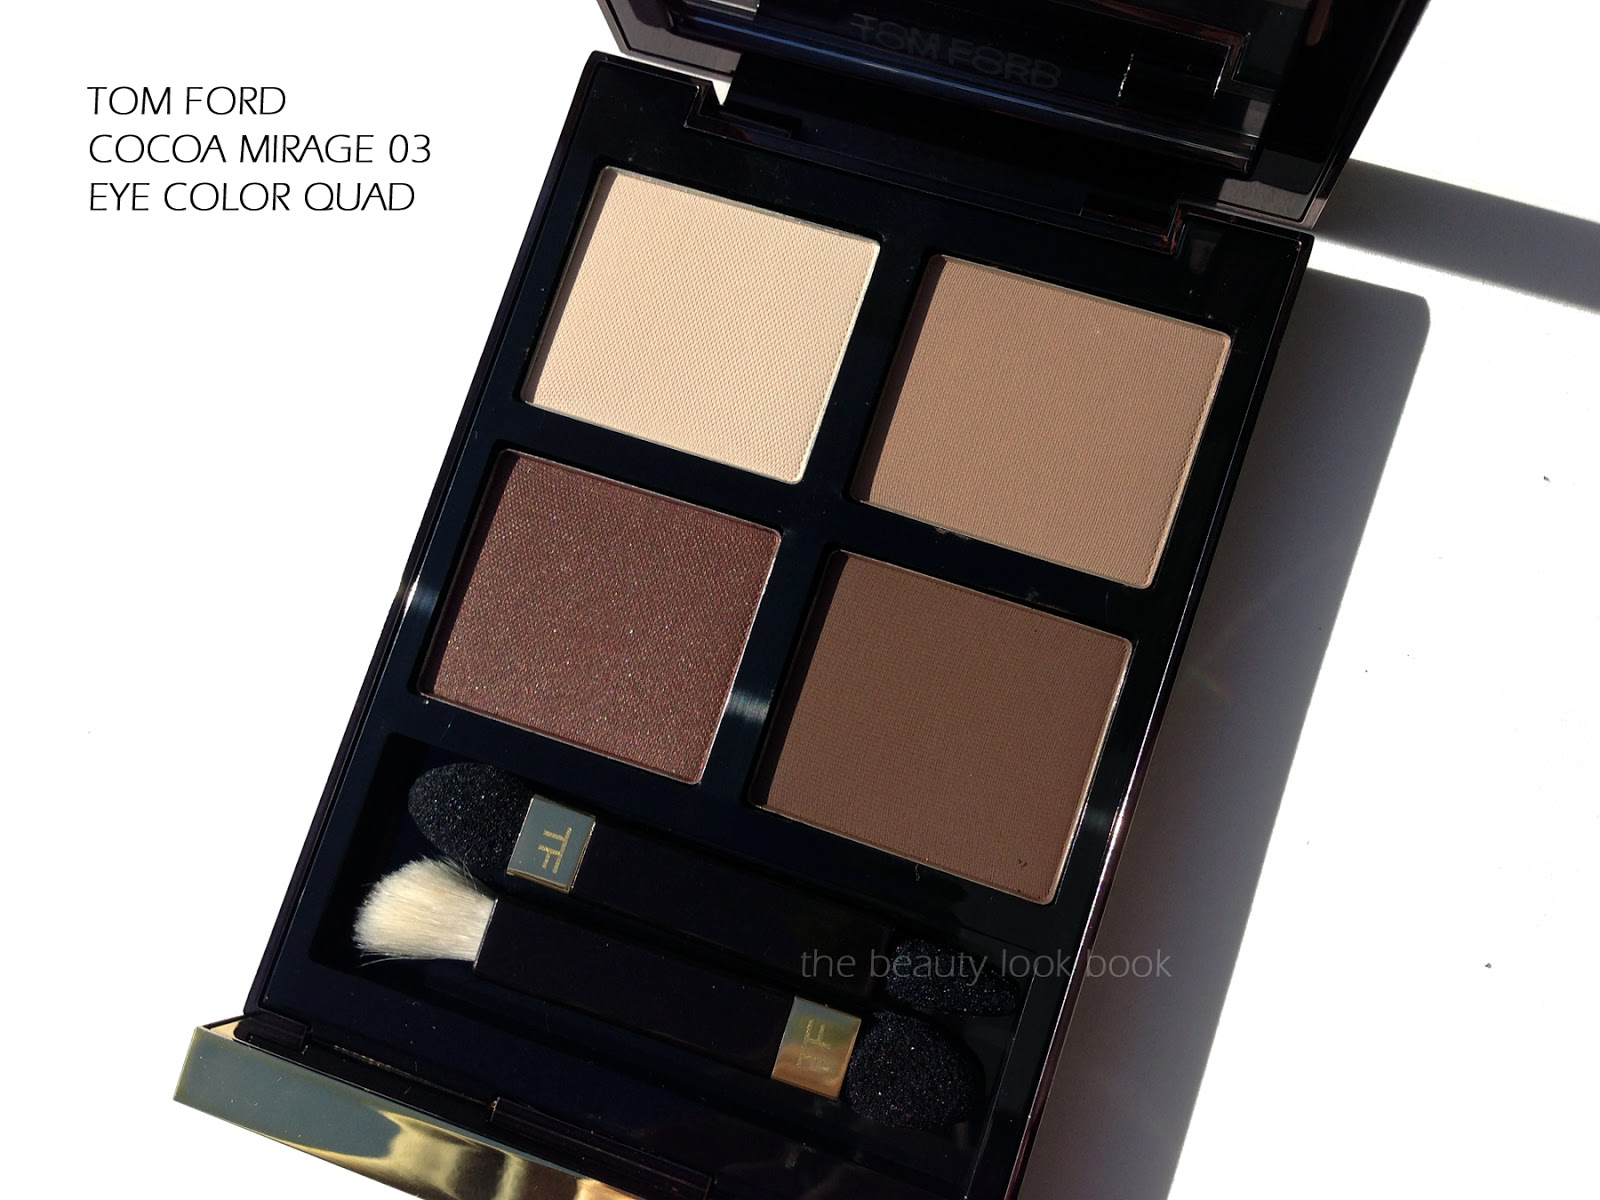 Tom Ford Cocoa Mirage Eye Color Quad The Beauty Look Book